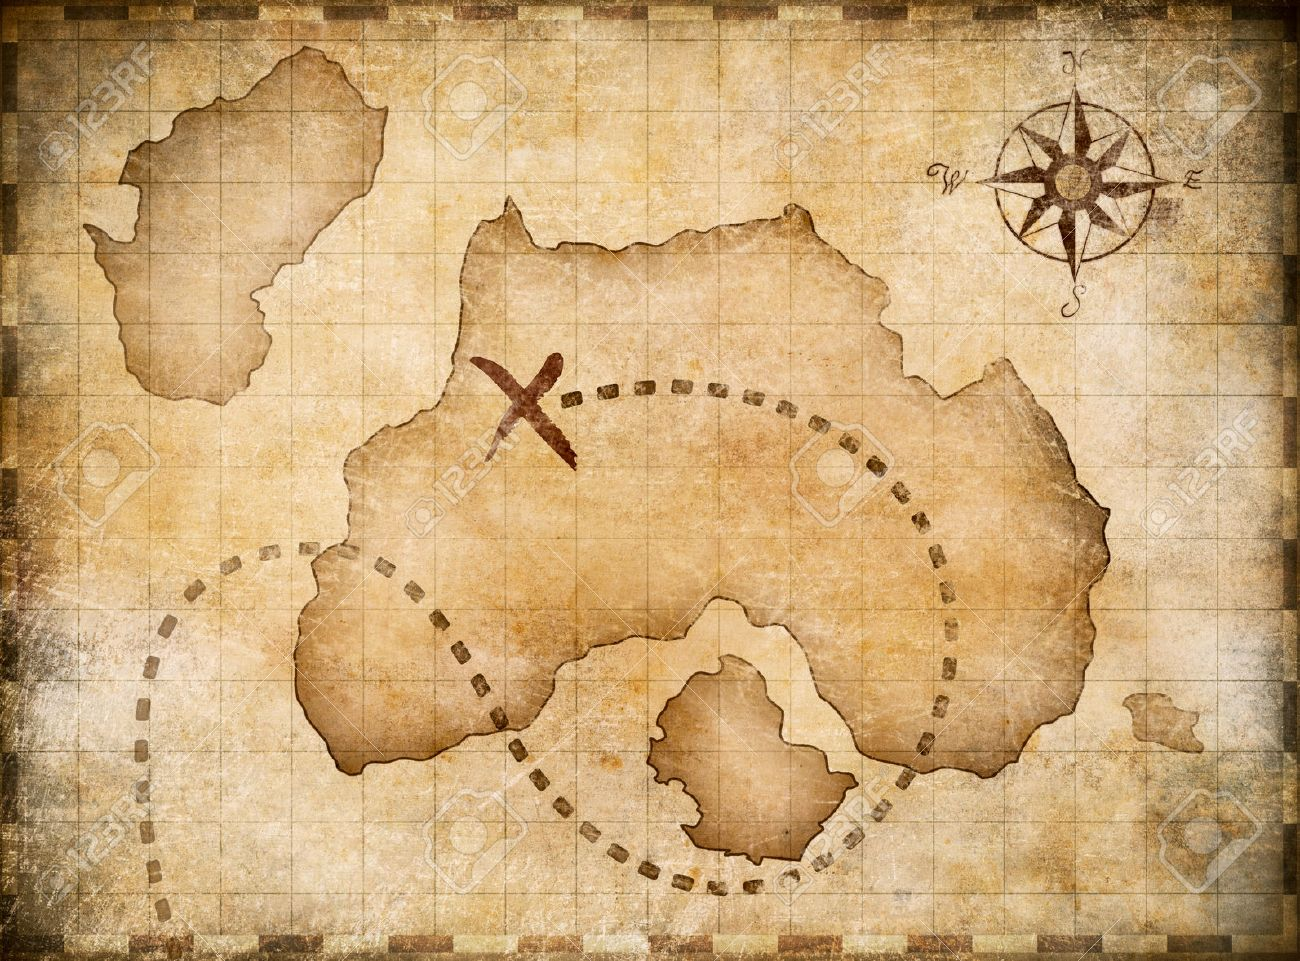 pirates map with marked treasure location. cross map stock photos royalty free cross map images and pictures